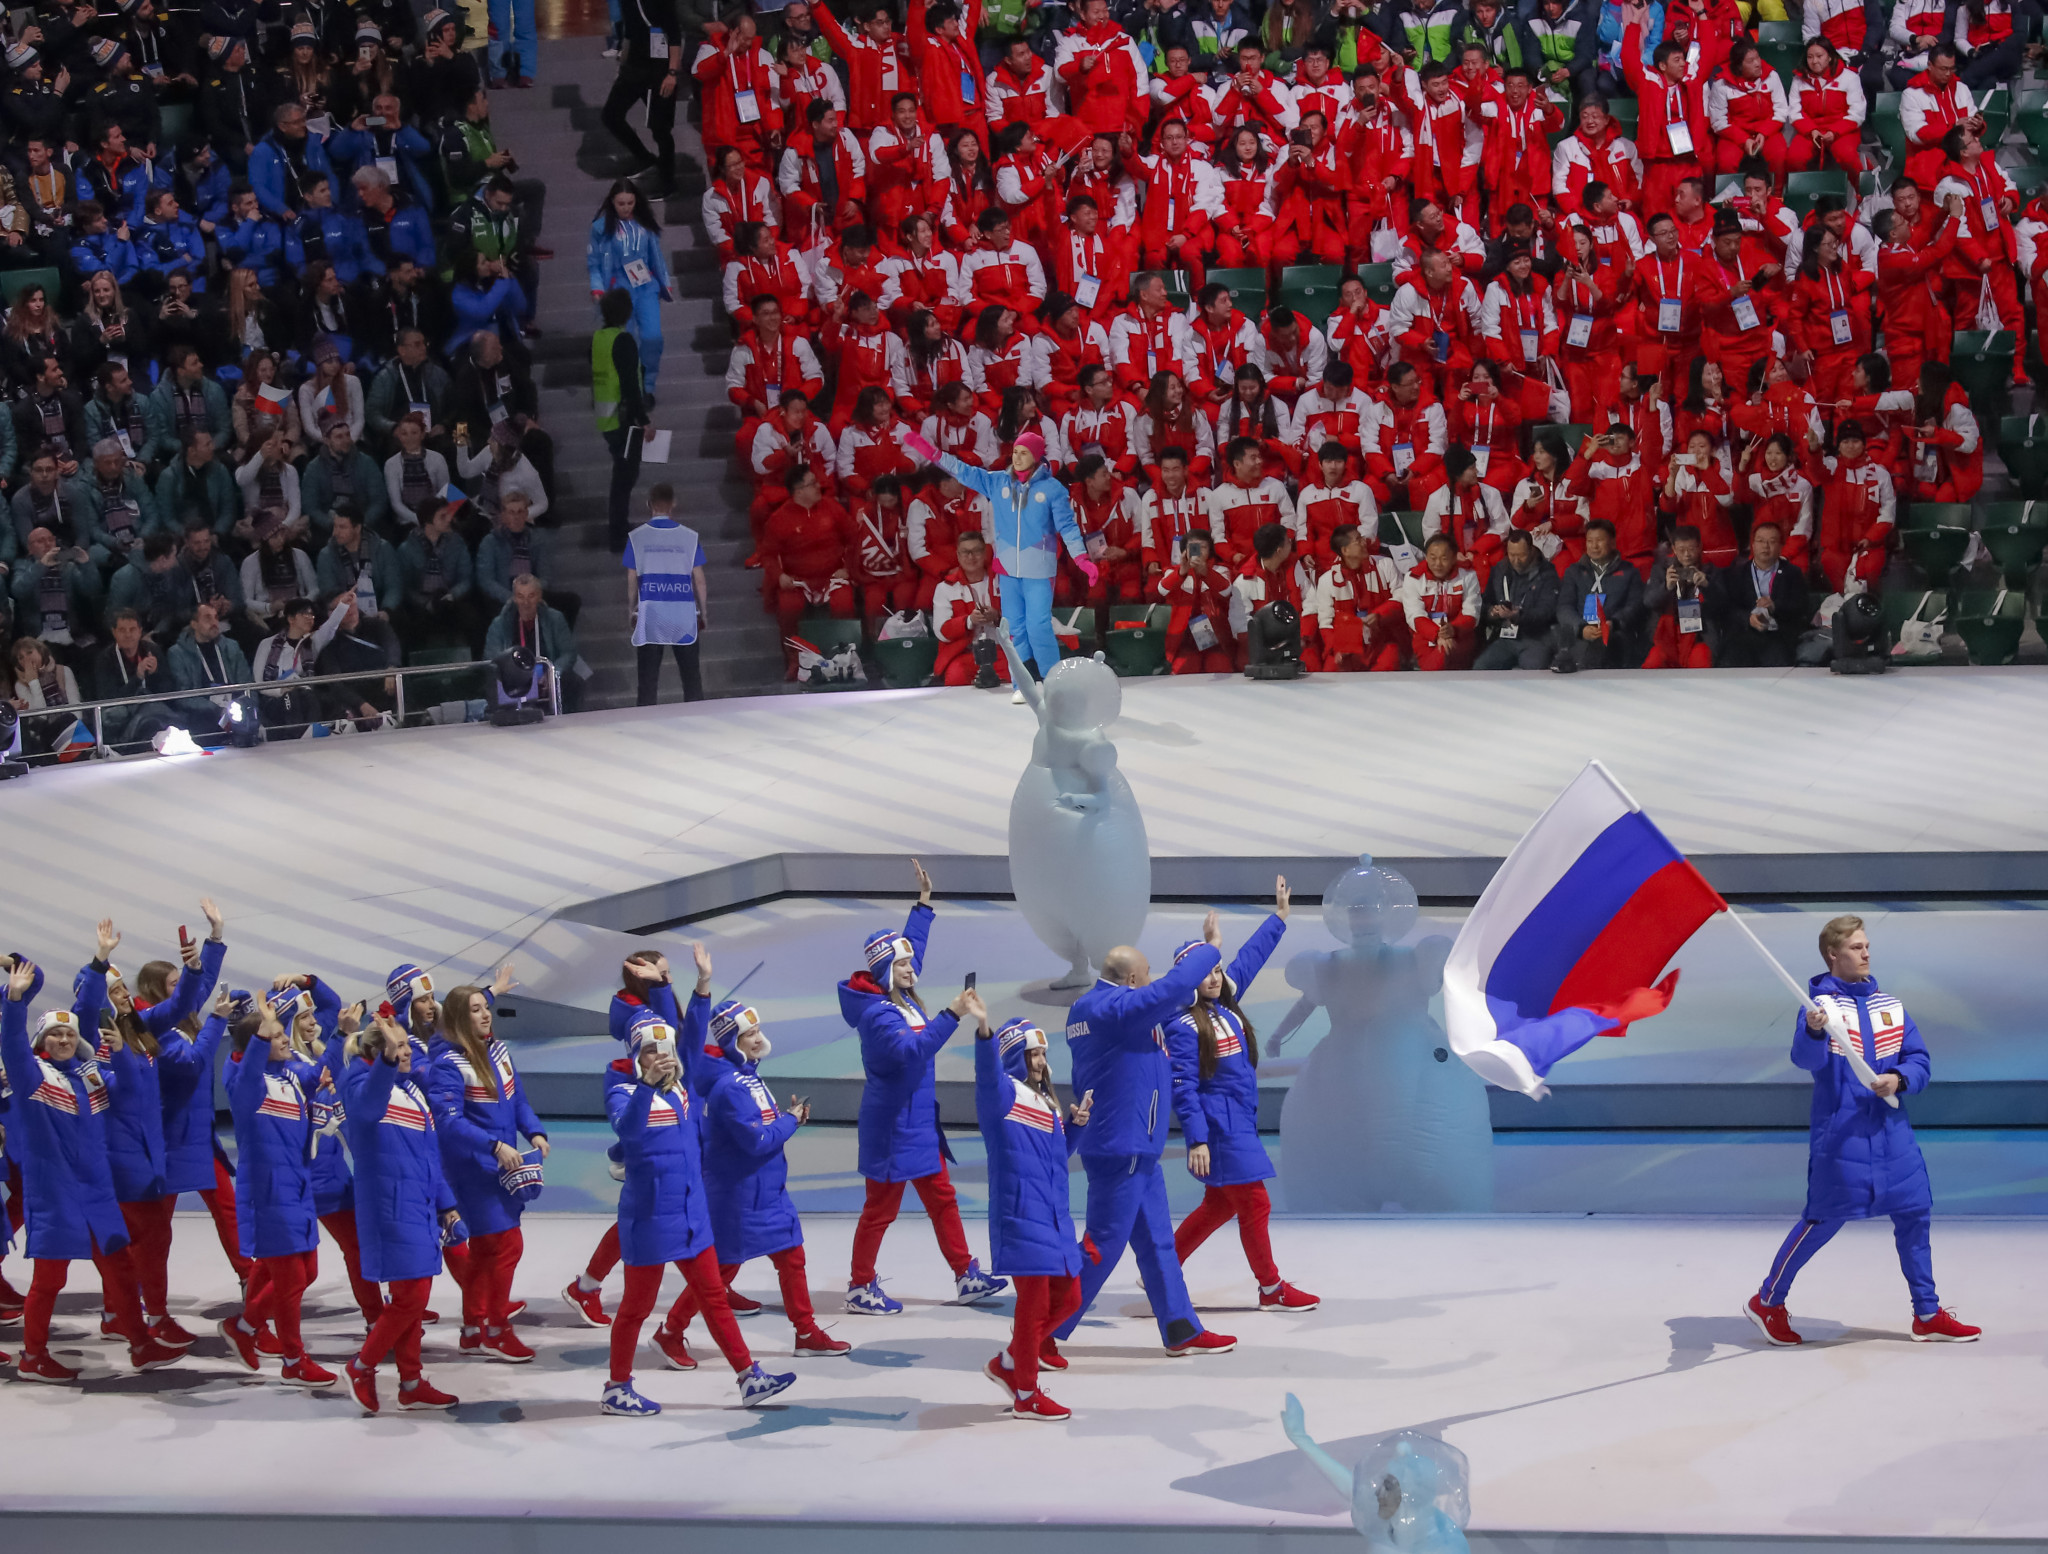 The awarding of the event provides immediate legacy for the Winter Universiade ©Getty Images